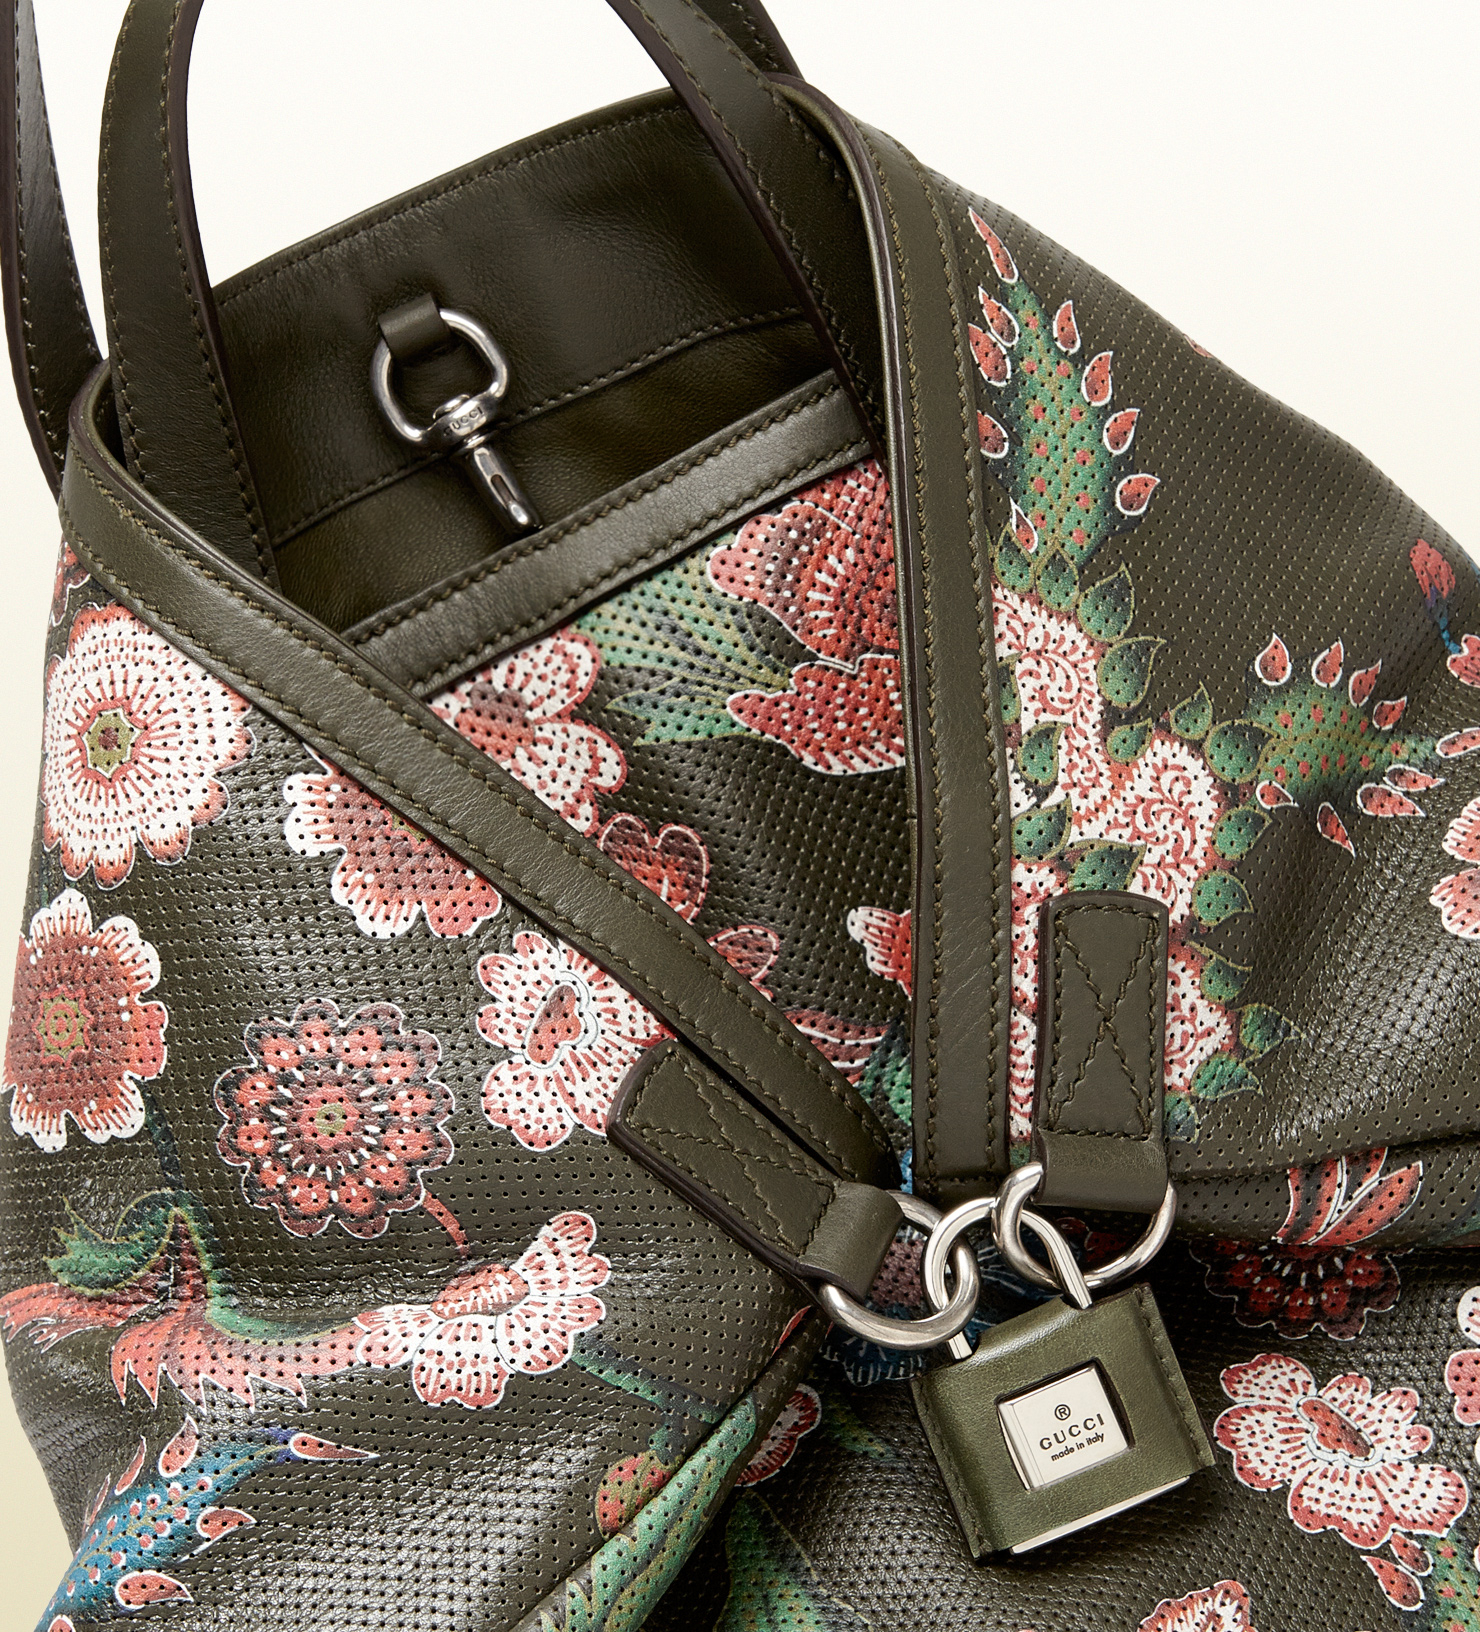 15026a64dd4 Lyst - Gucci Gactive Flower Print Perforated Leather Backpack in ...